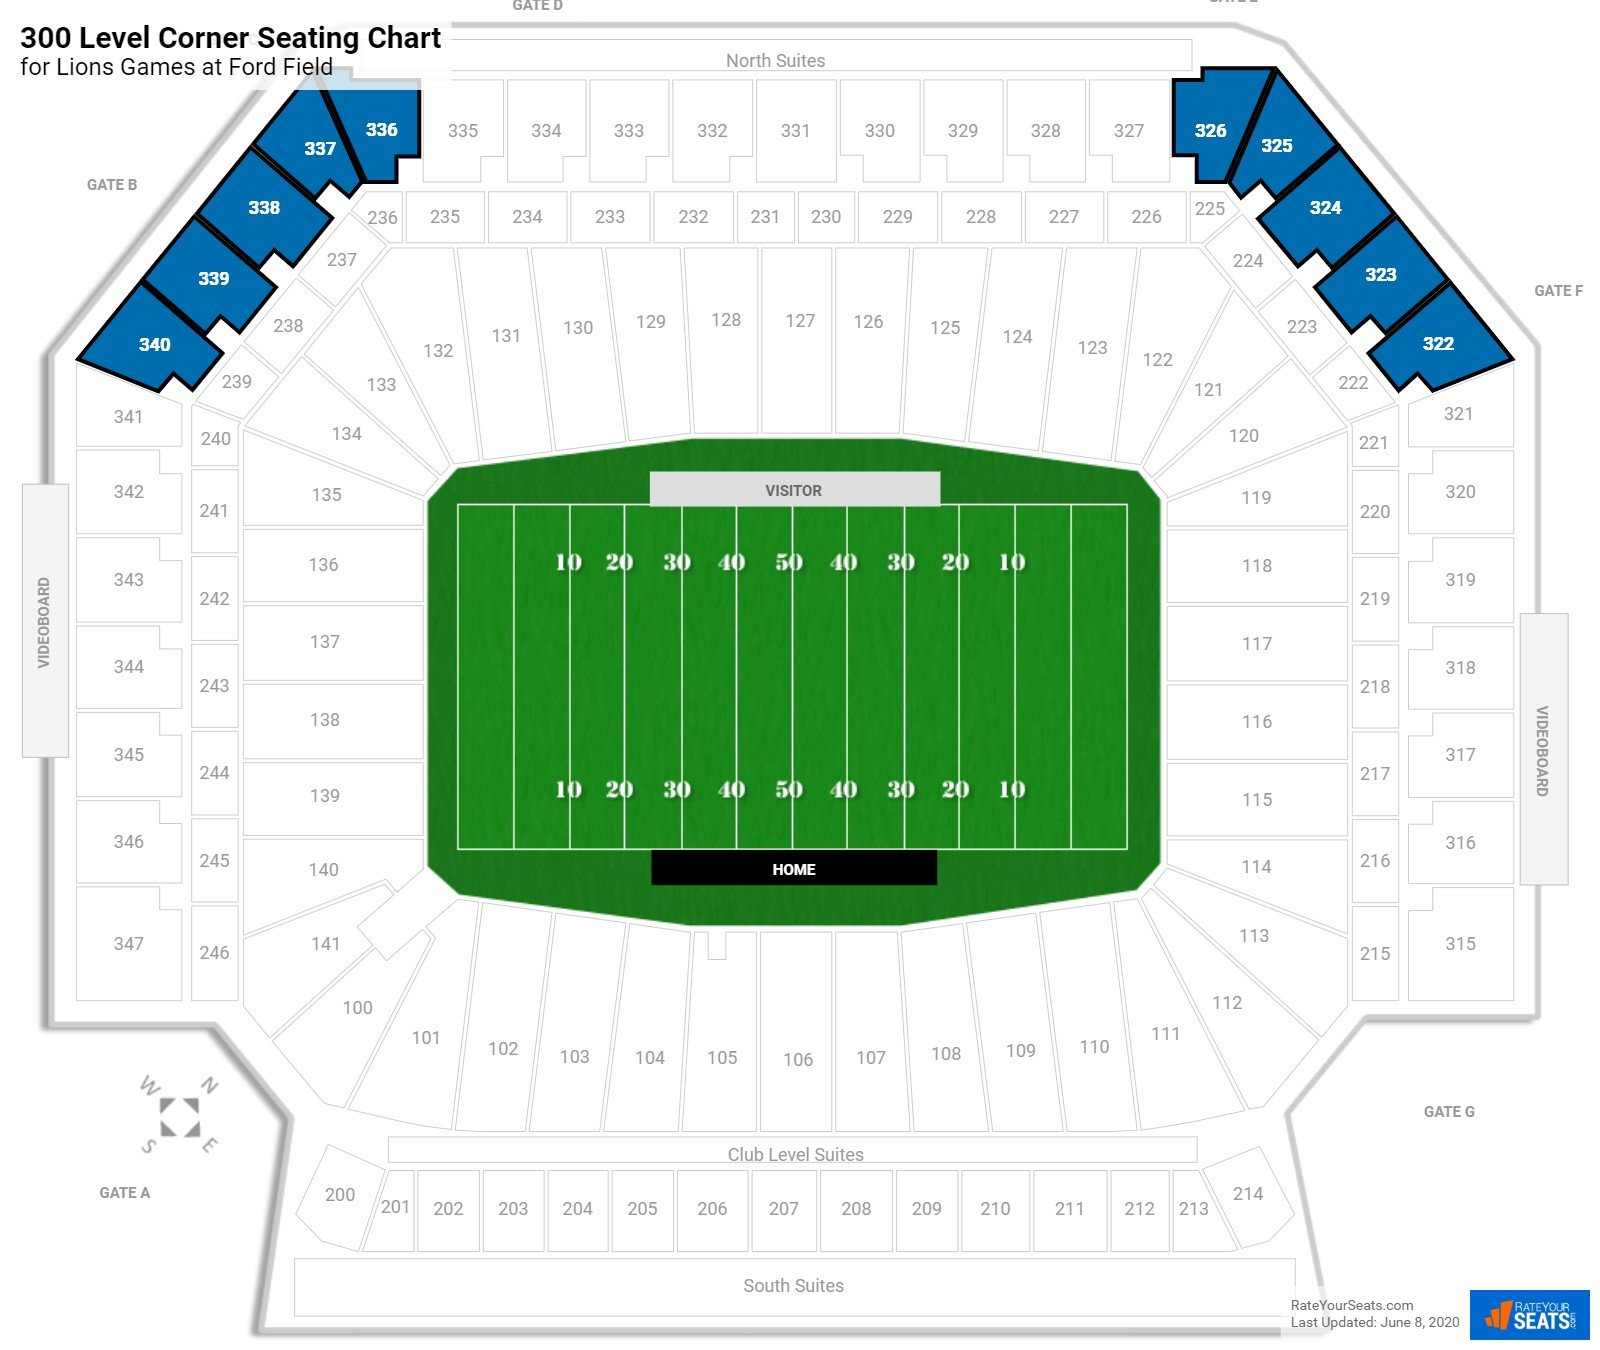 Ford Field 300 Level Corner seating chart